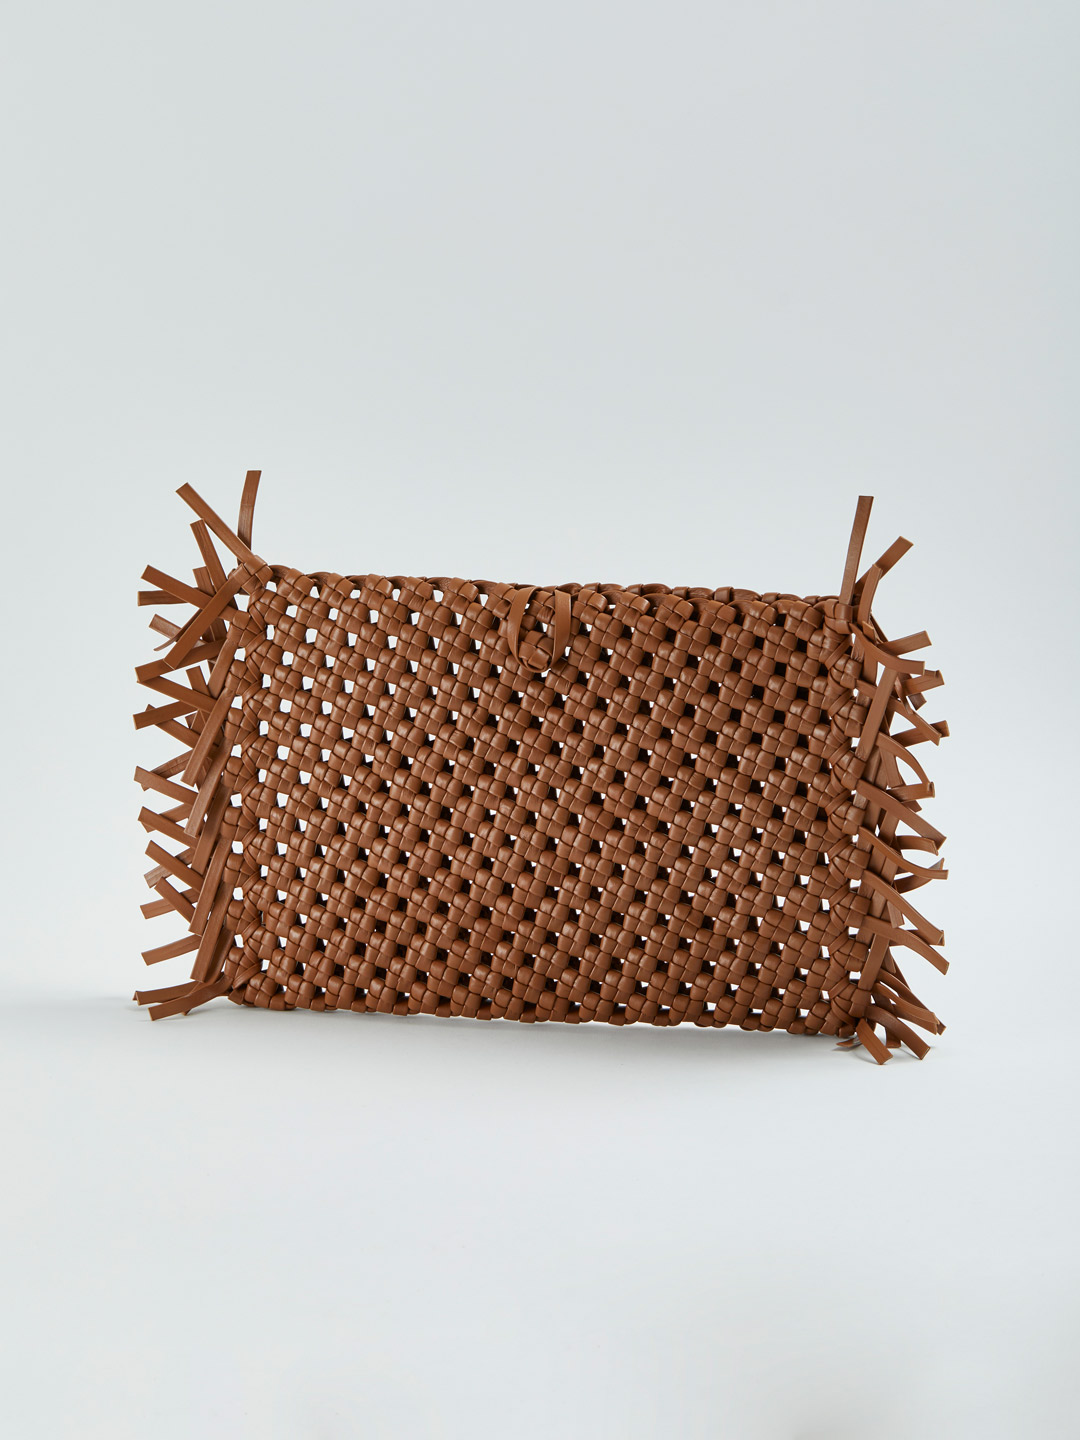 Nudo Lacy Fringe Clutch Bag - Brown